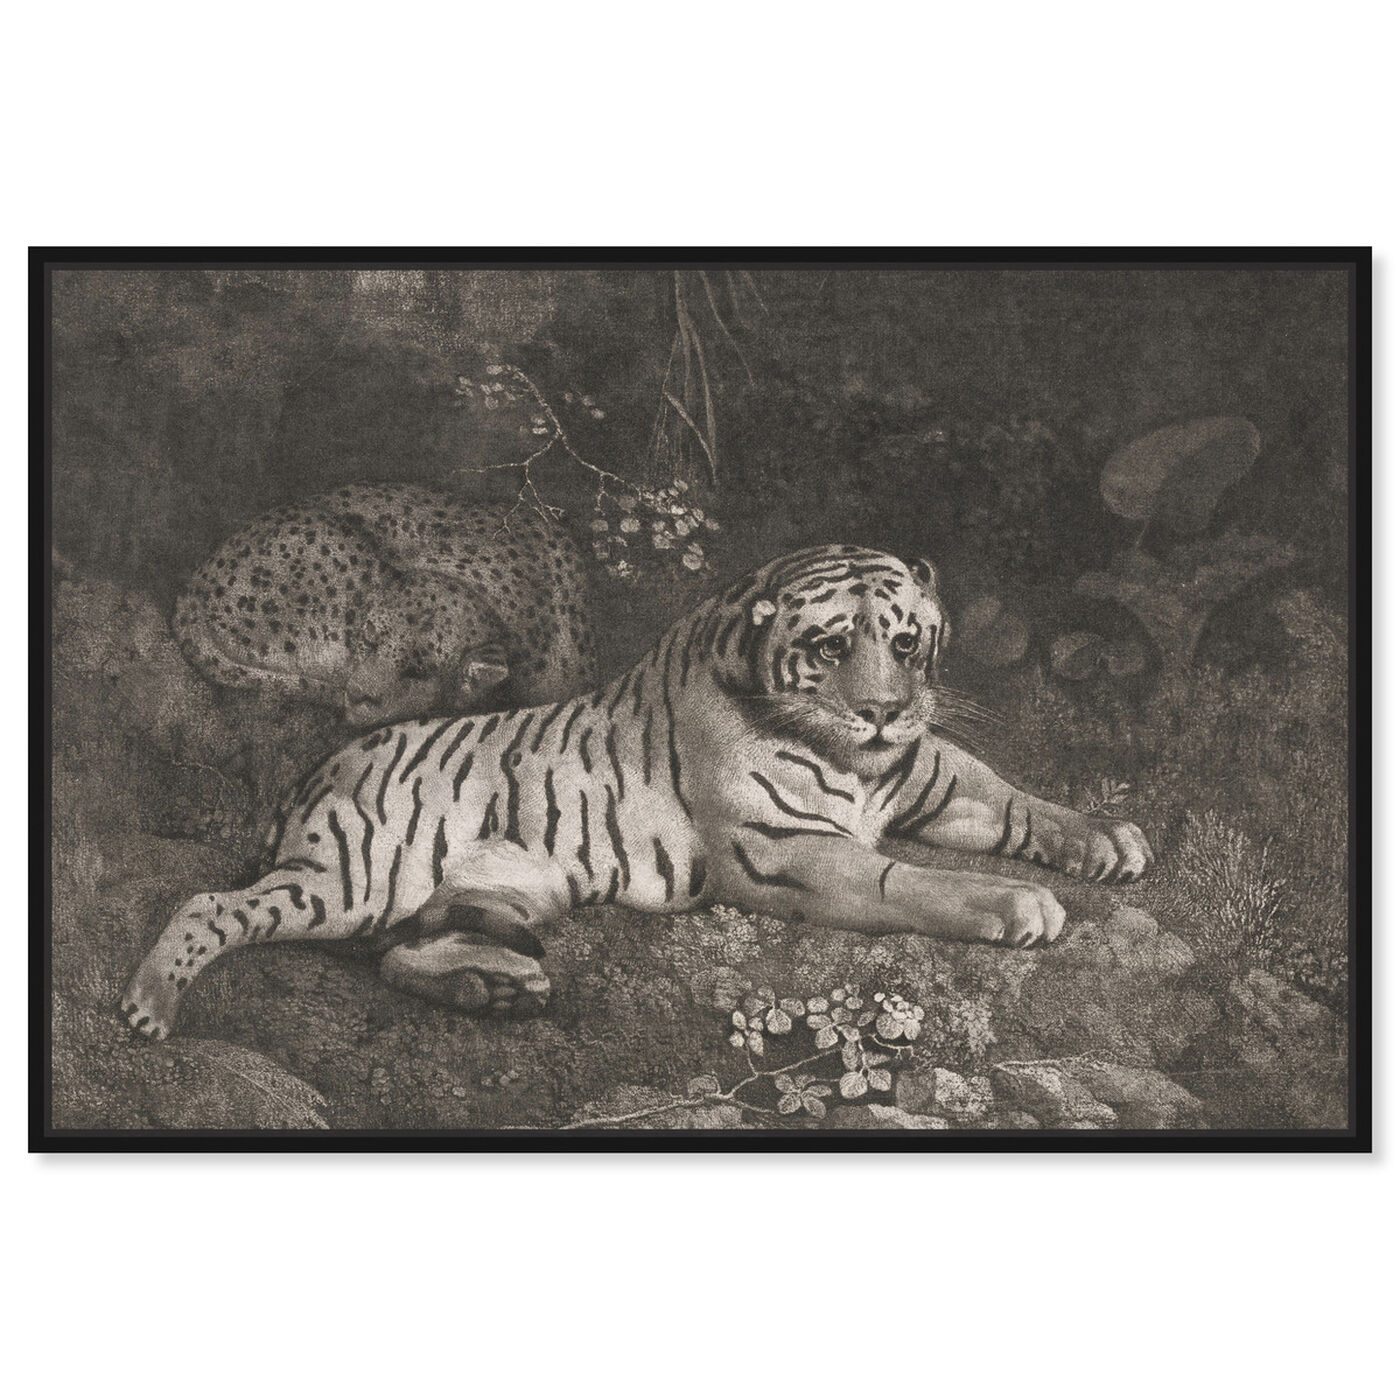 Front view of G Stubbs - A Tiger Sleeping and a Leopard 1788 featuring animals and felines art.